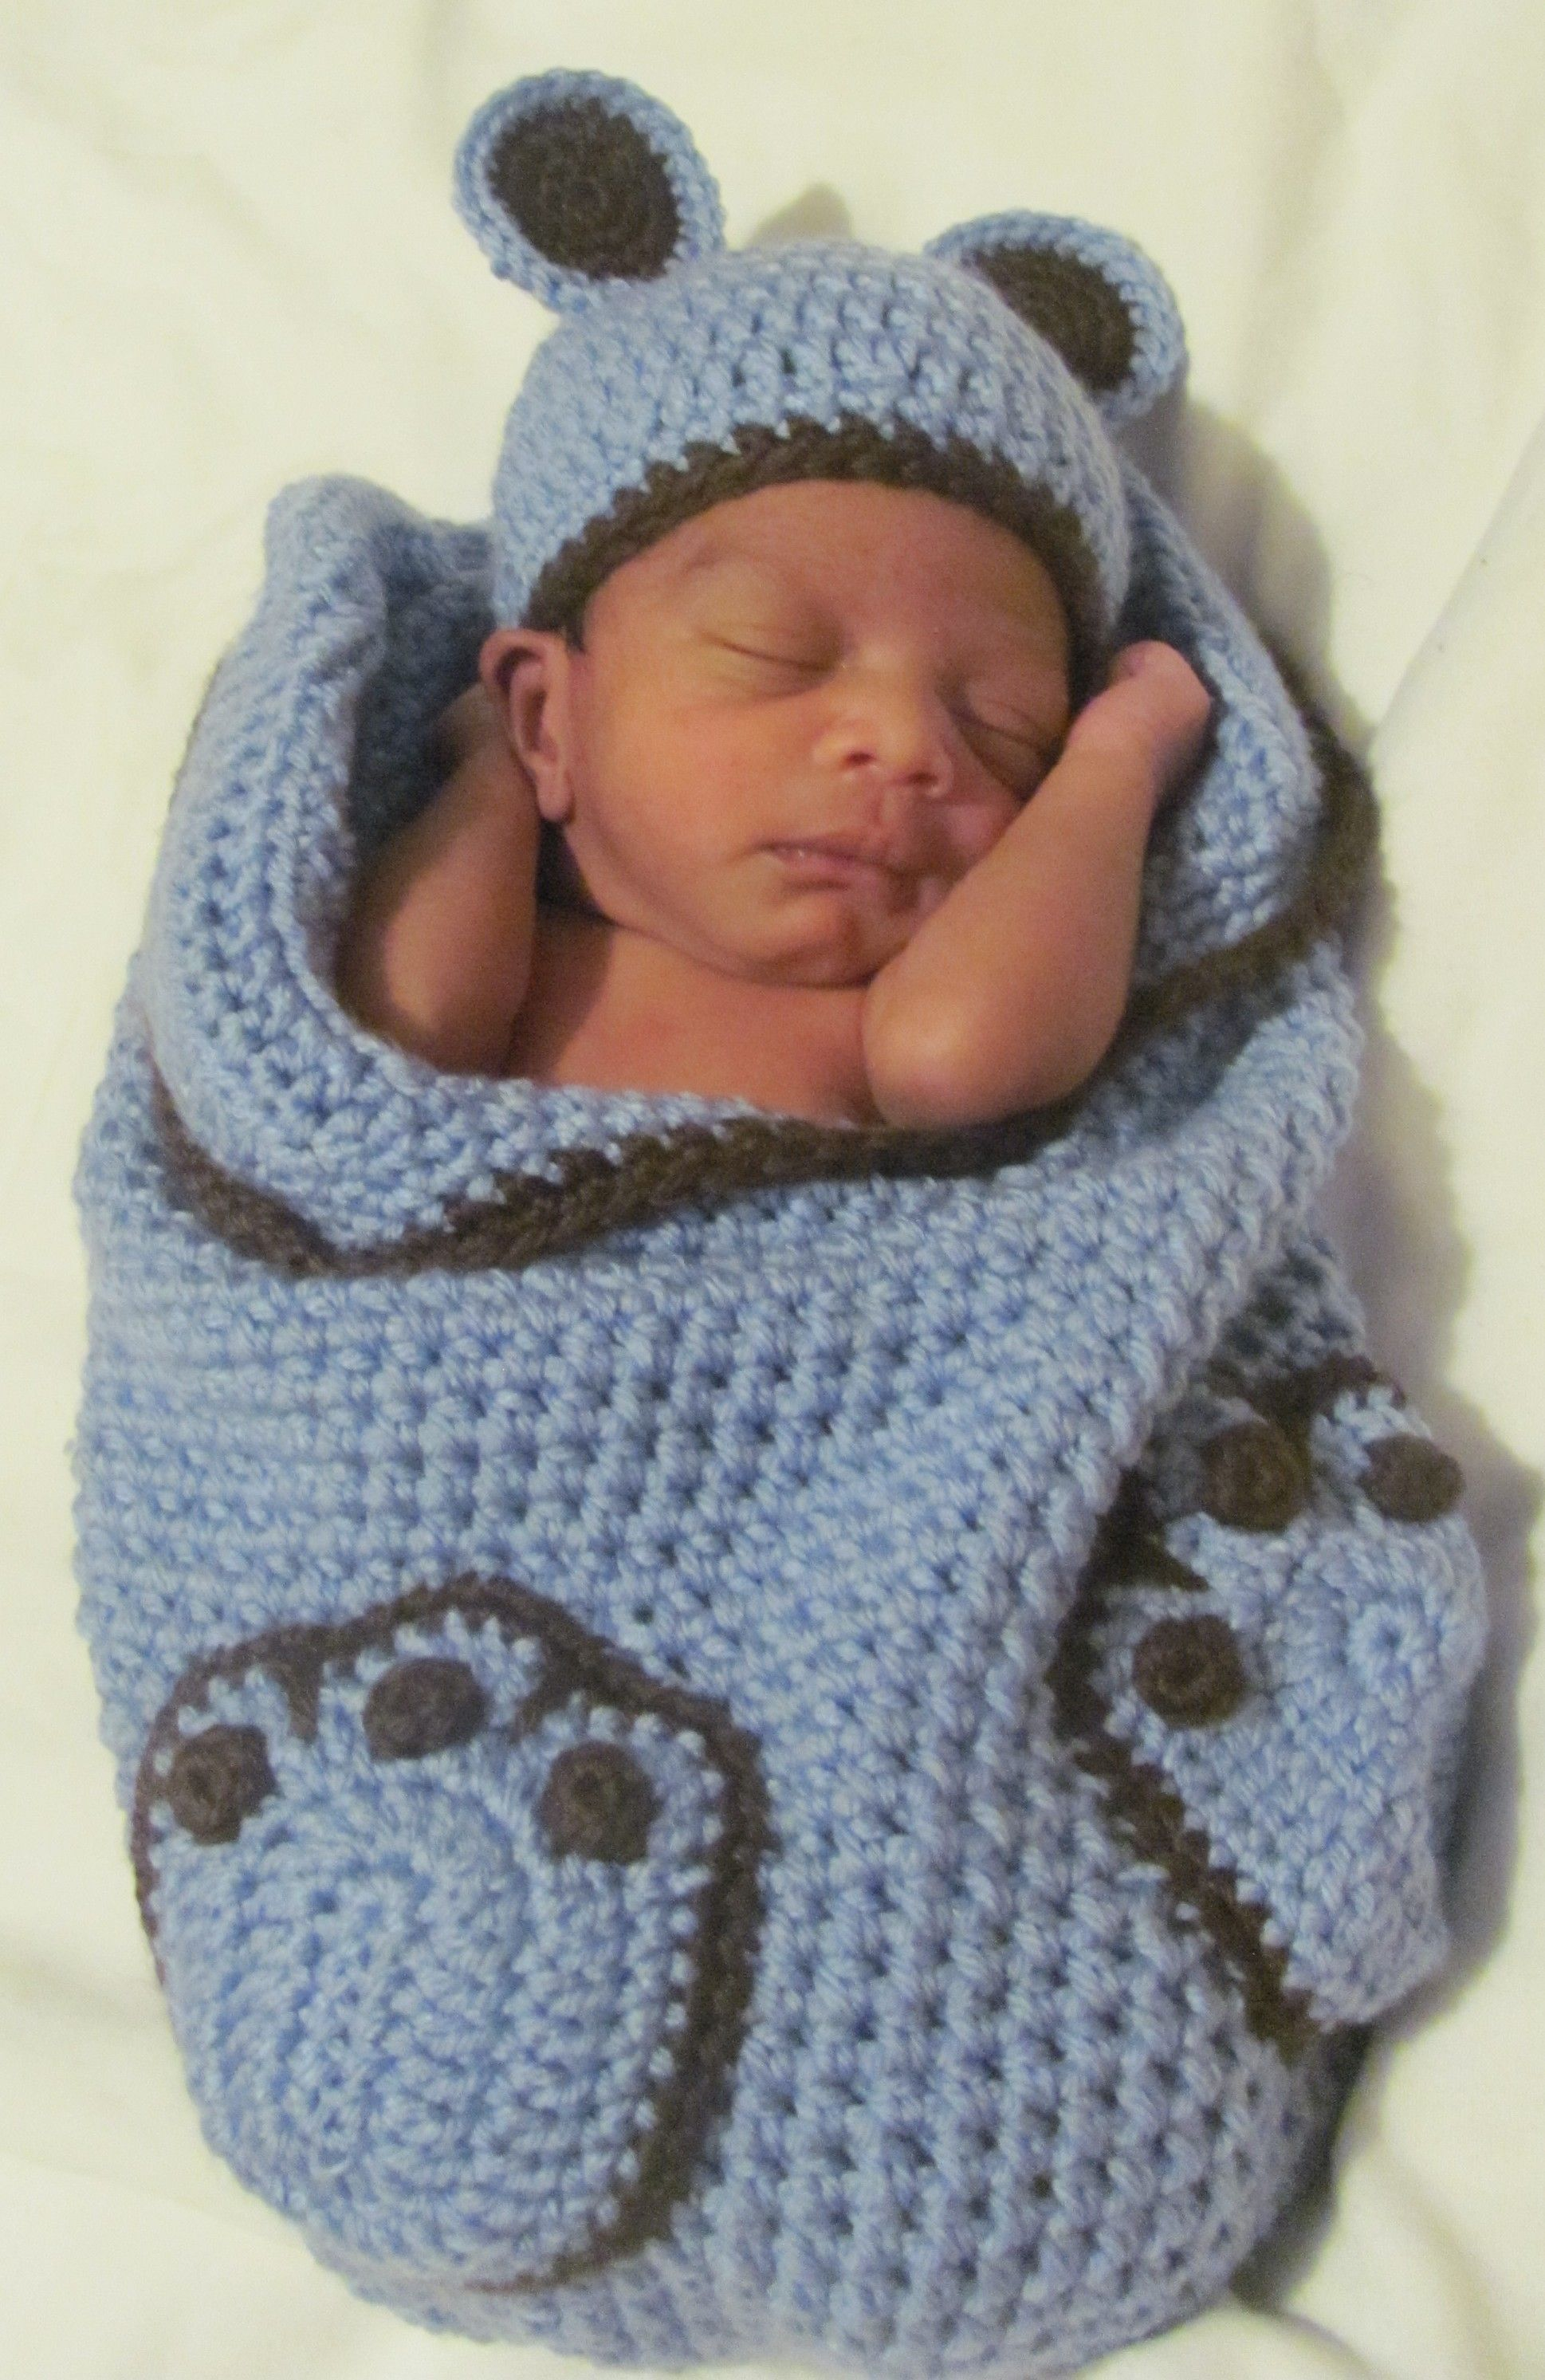 Crocheted Teddy Bear Cocoon Crochet Baby Cocoon ...